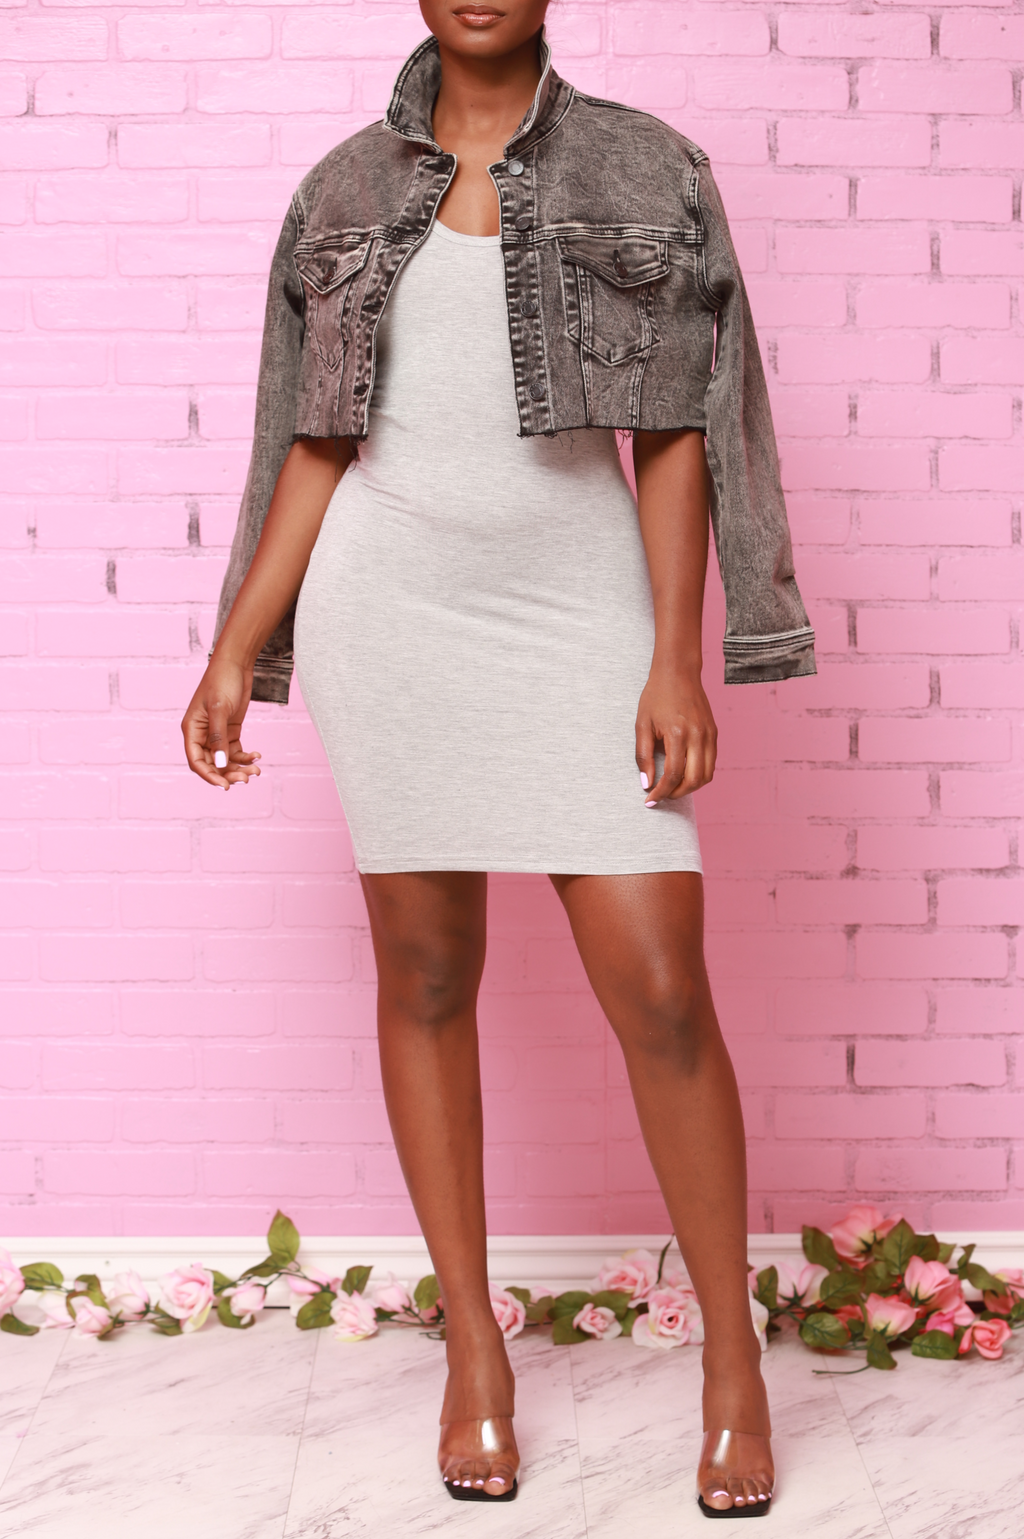 Mercy Tank Top Mini Dress - Heather Grey - Swank A Posh